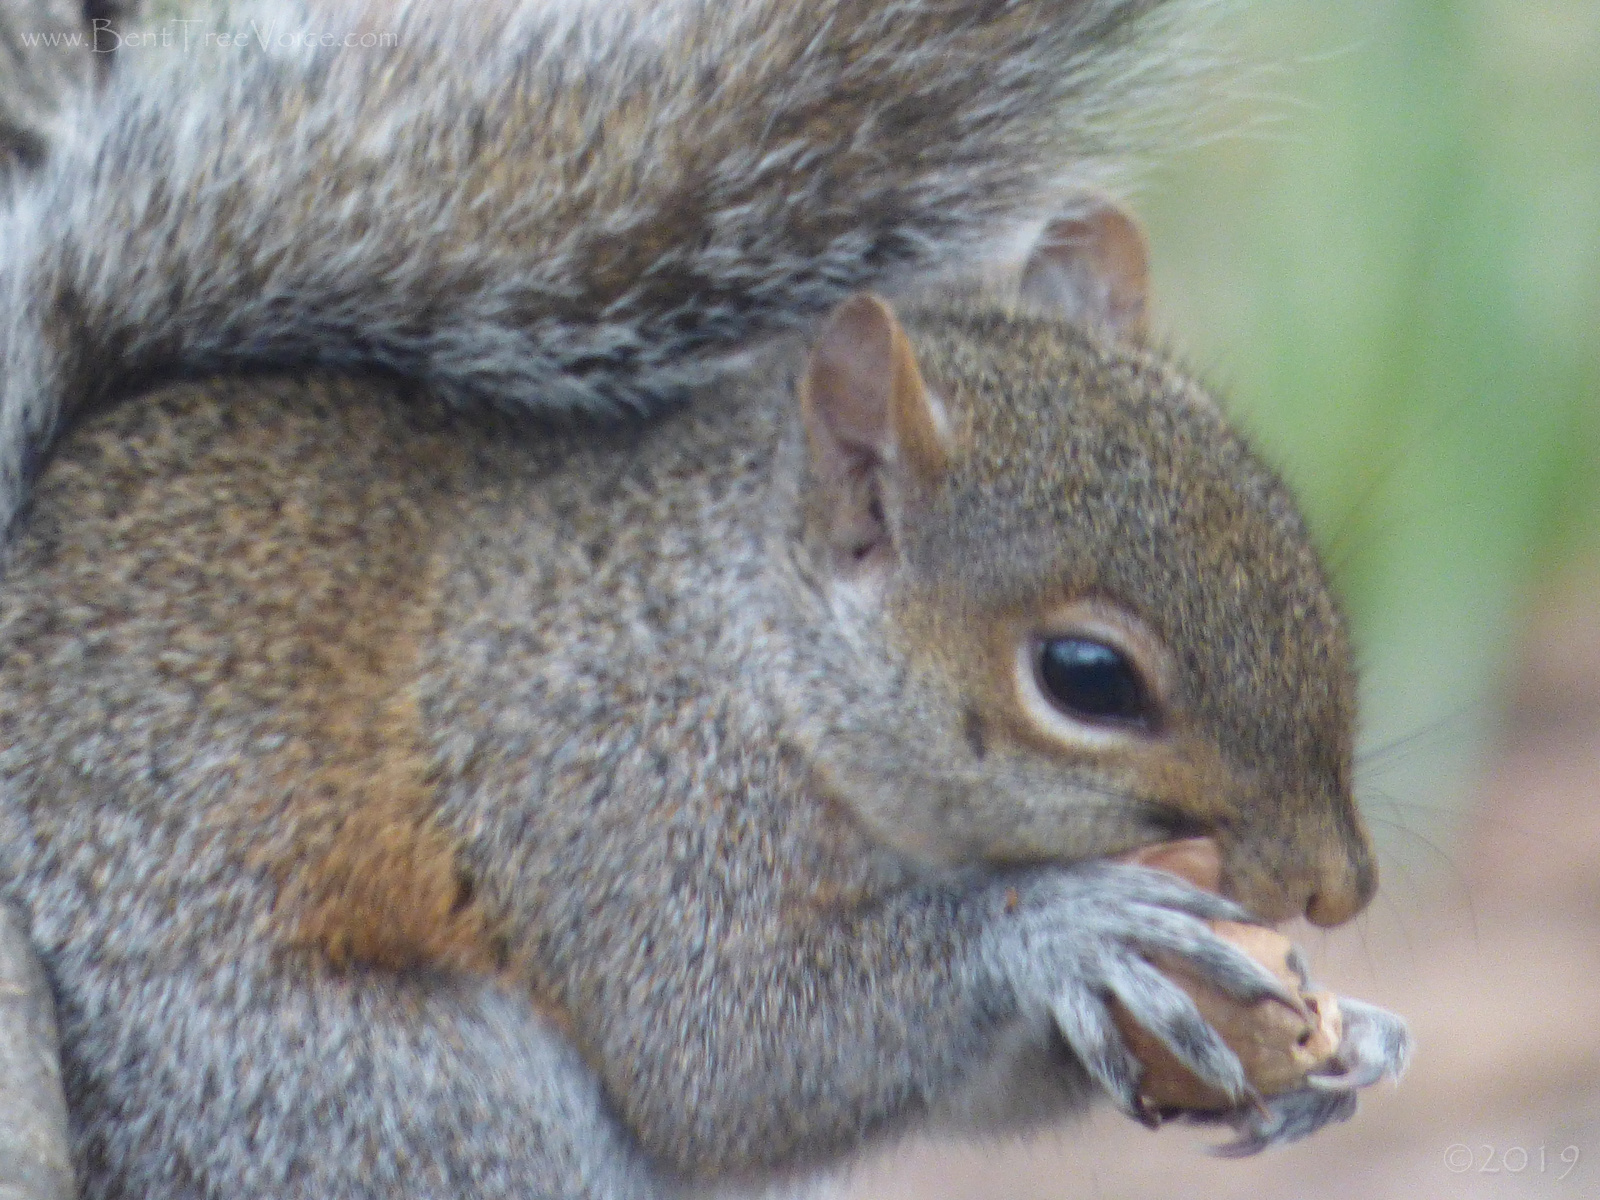 March 21, 2019 - Squirrel eating a nut in Bent Tree